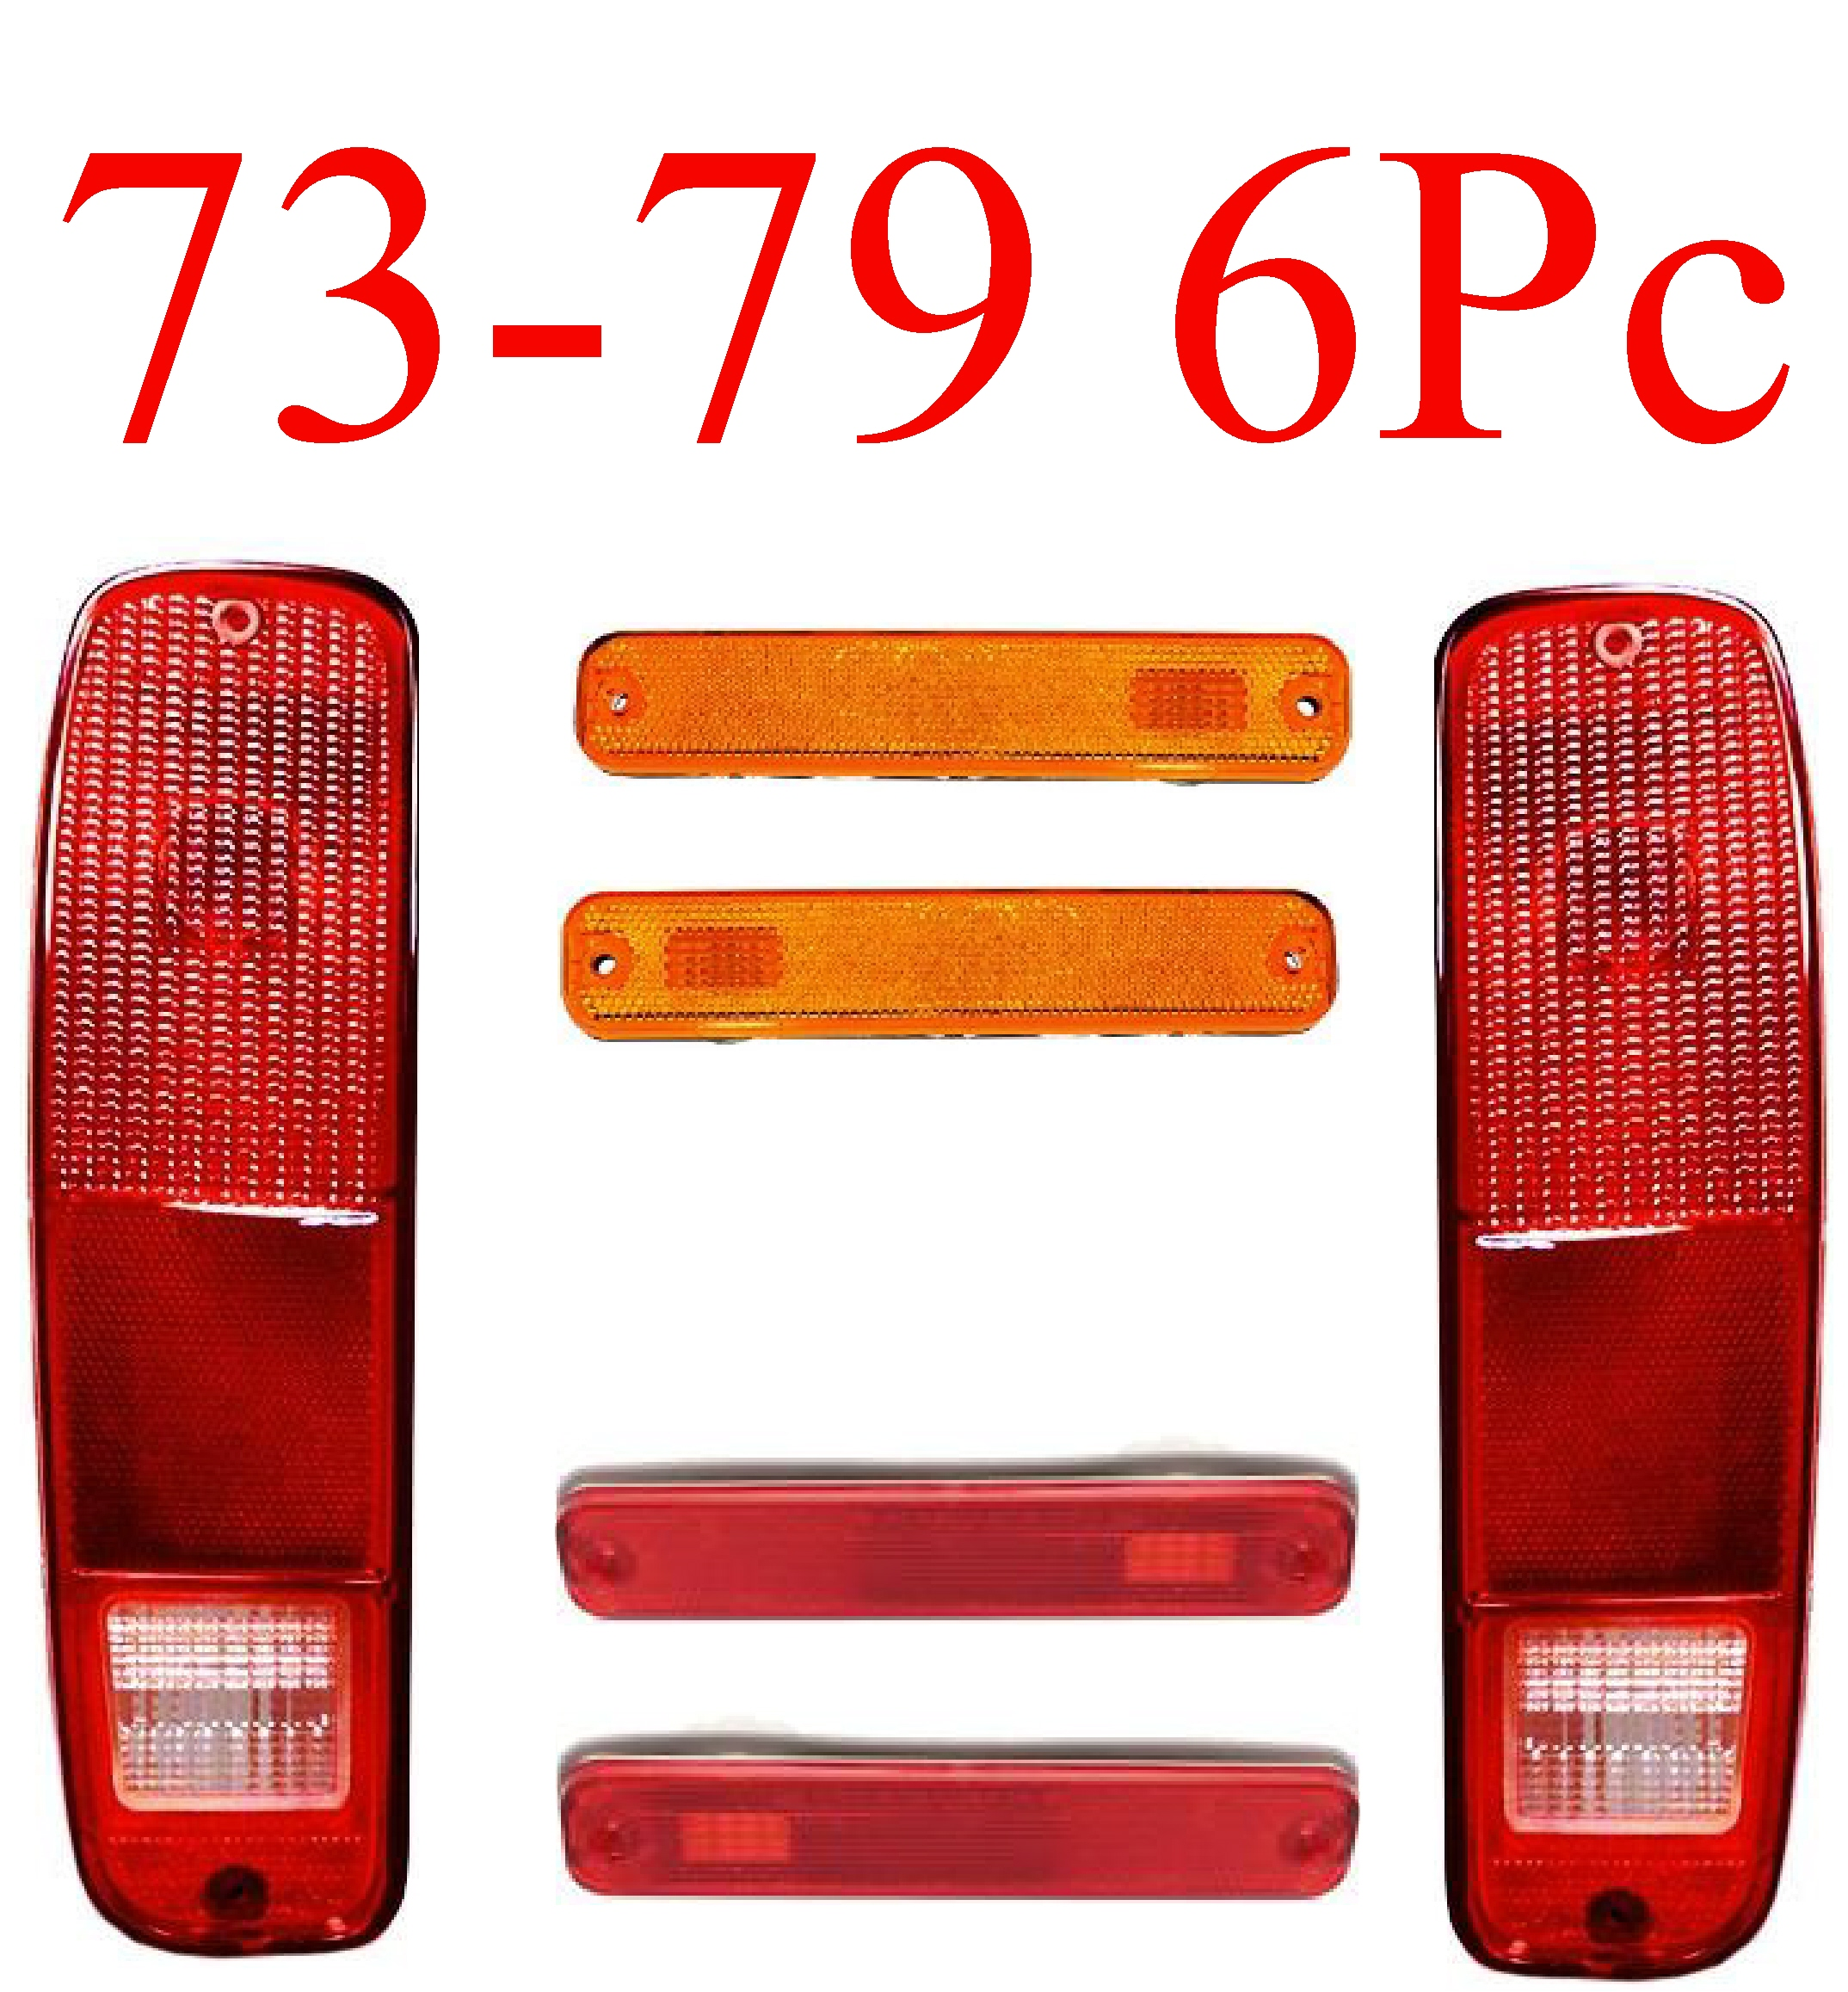 73 77 ford truck 78 79 bronco rear tail light harness online store. Black Bedroom Furniture Sets. Home Design Ideas